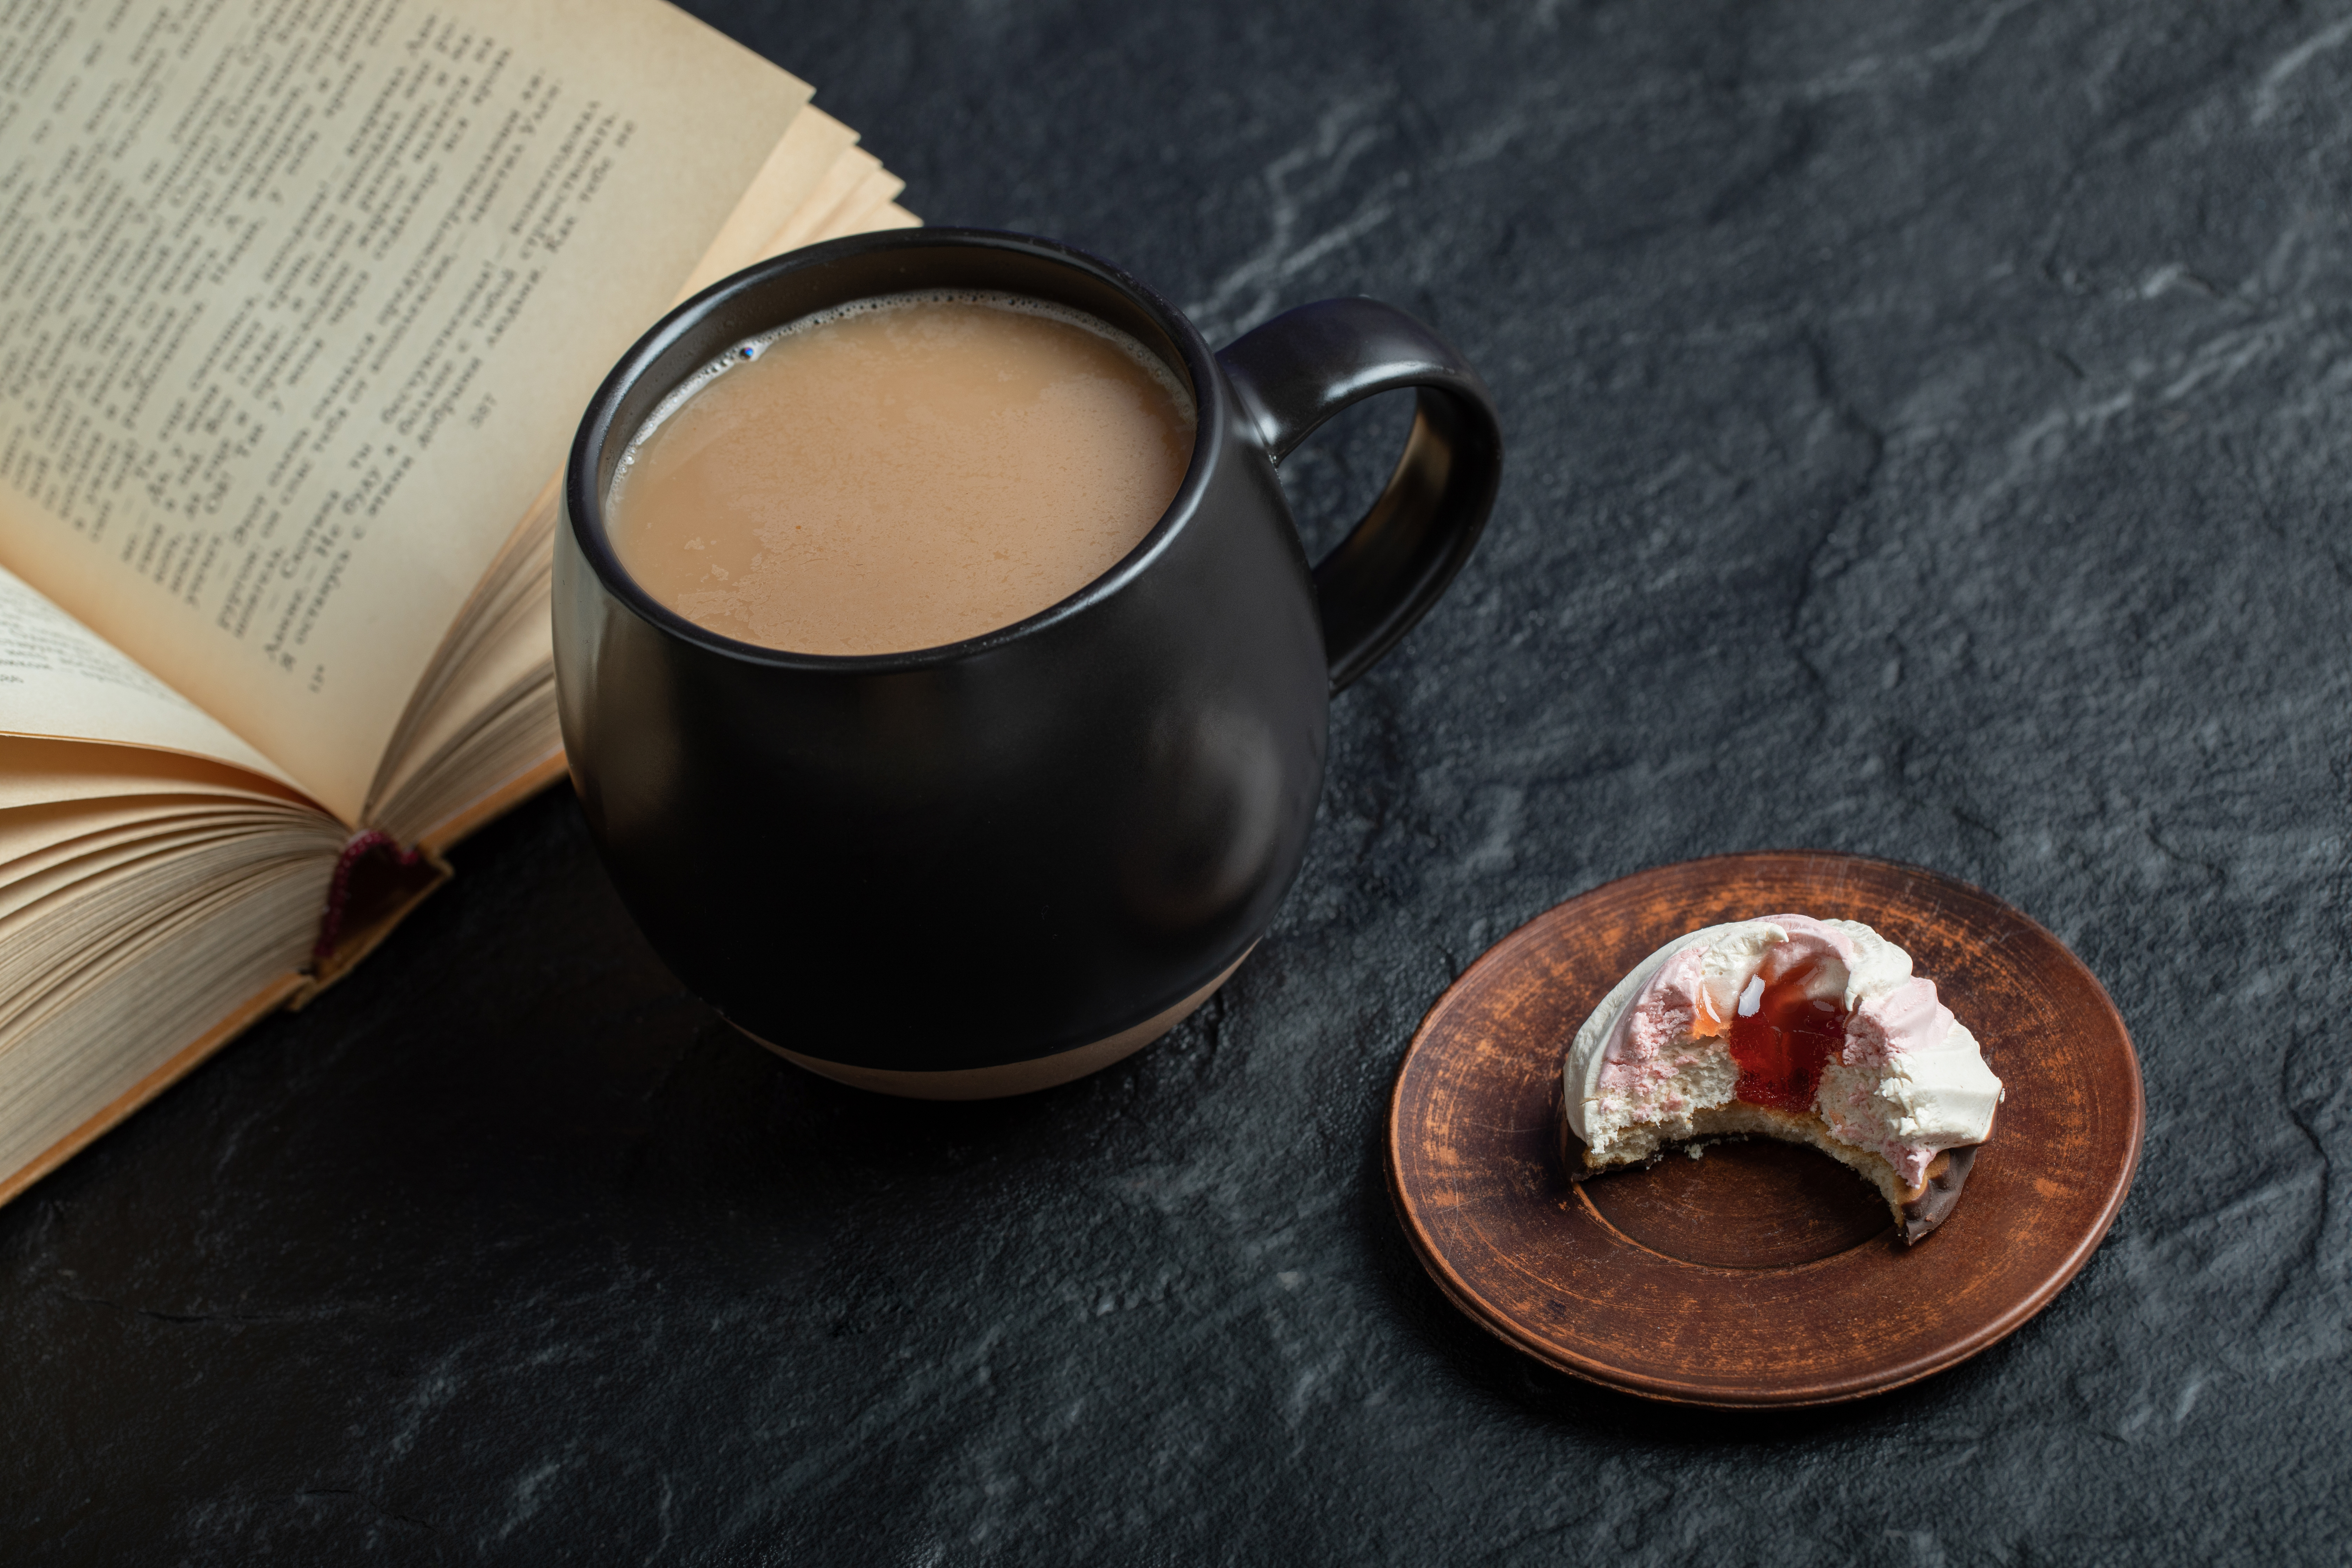 A cup of coffee with book and bitten cupcake